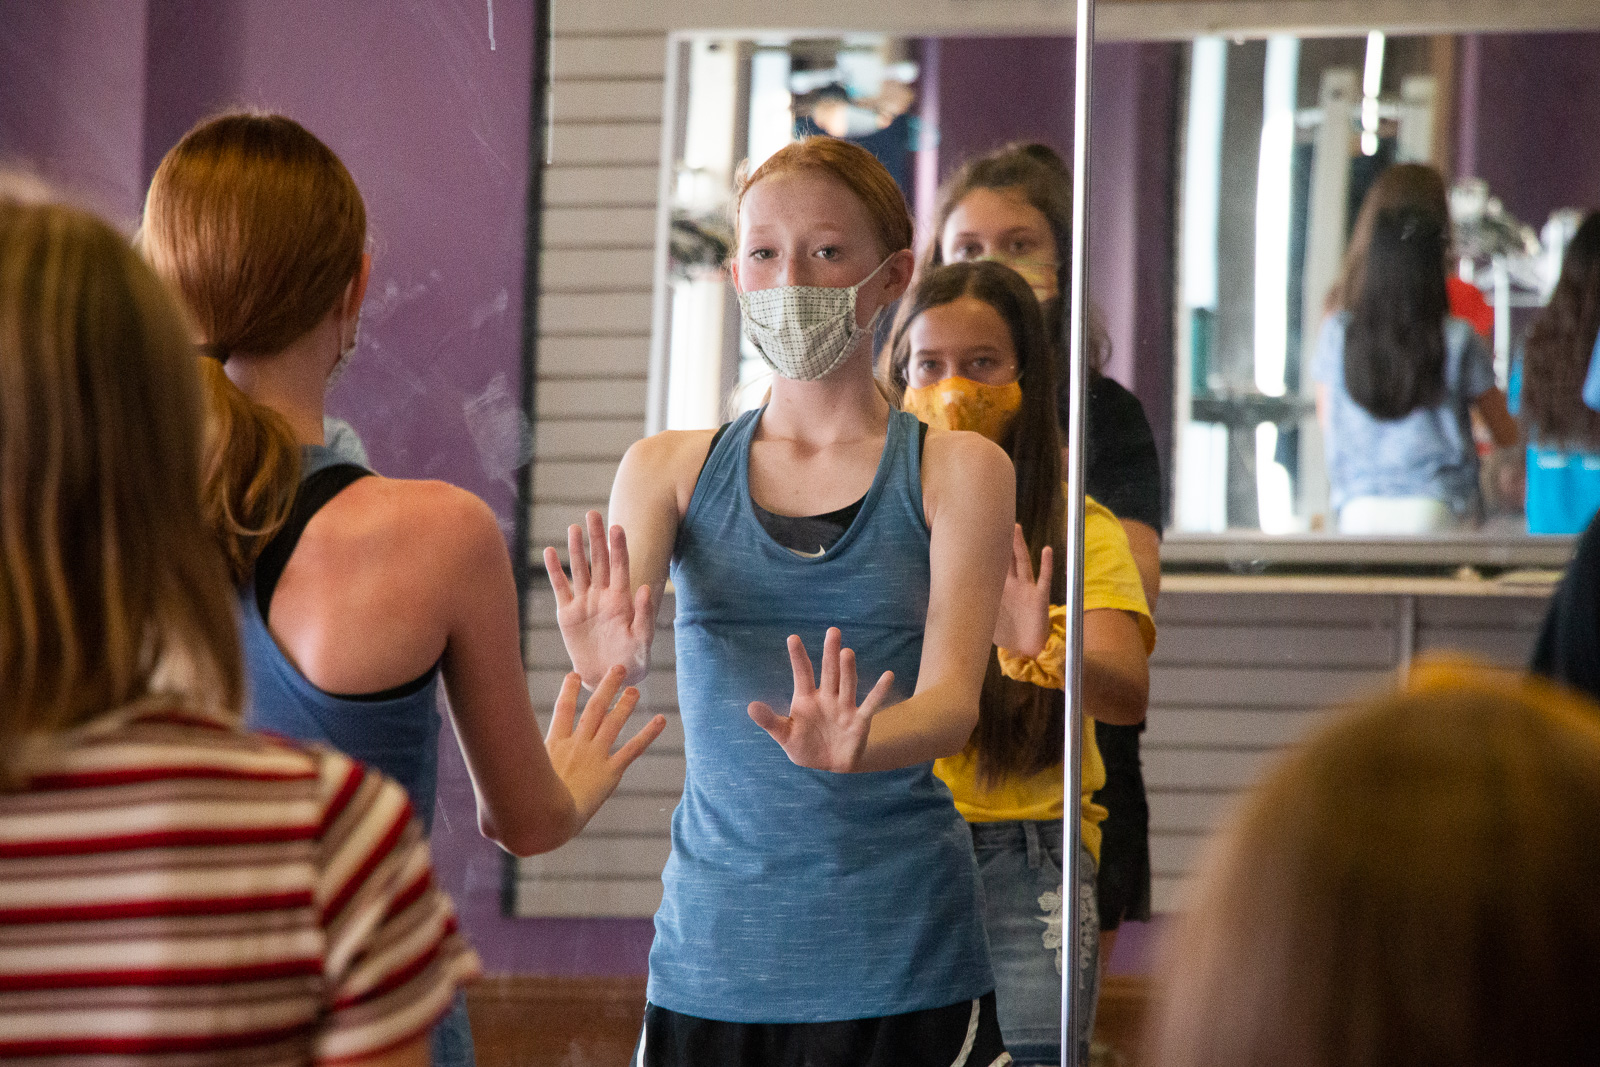 Dance Rehearsal at NTPA - Fairview with Masks